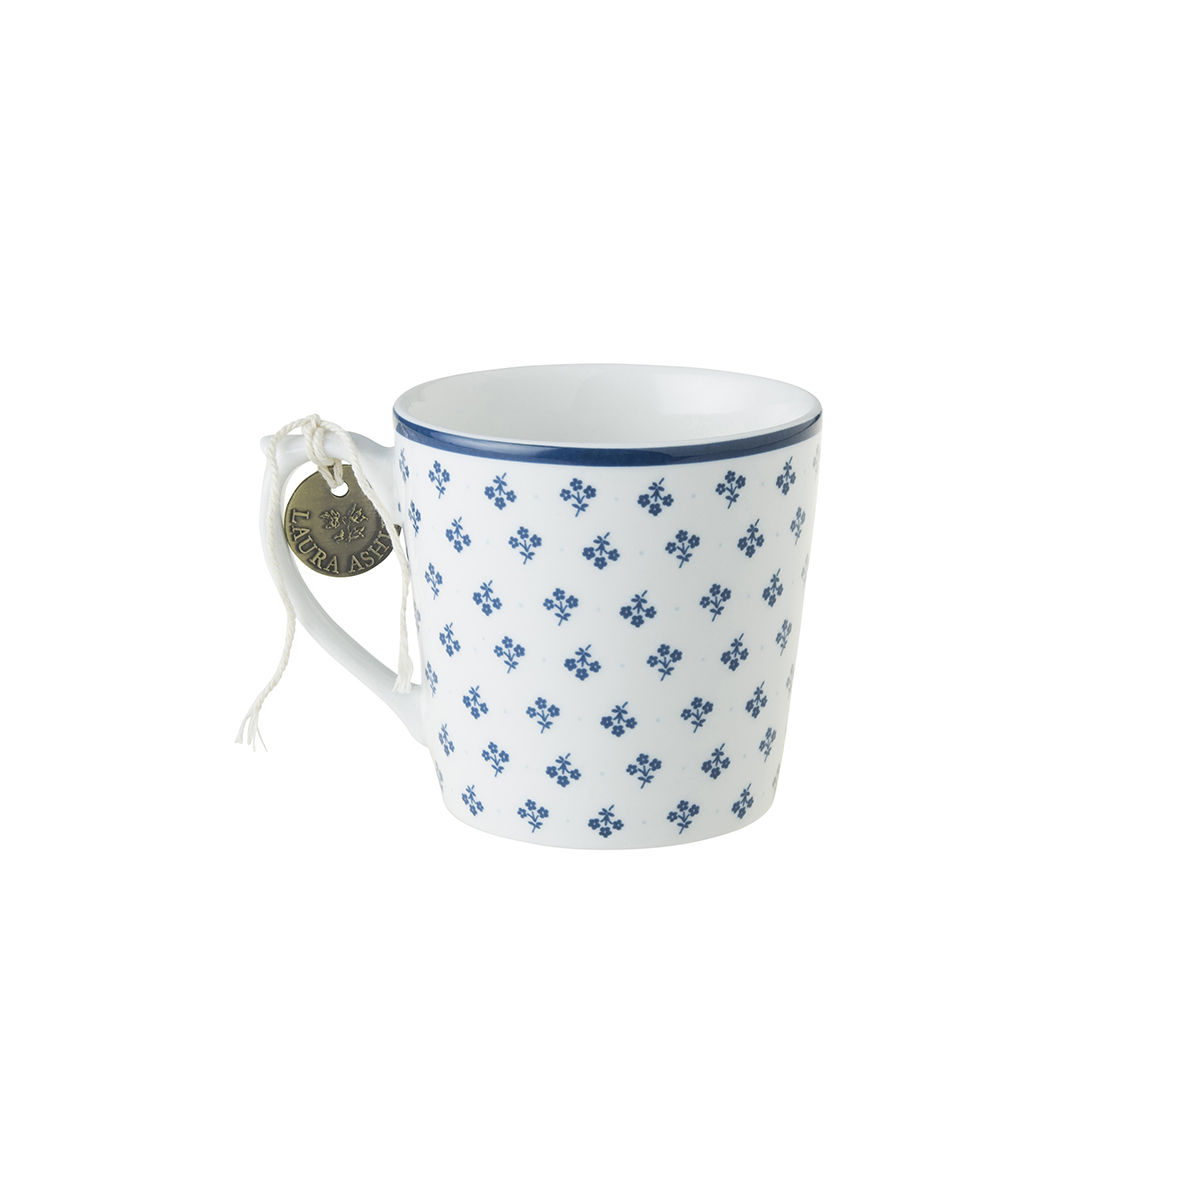 Laura Ashley Mug 7.5 oz Petit Fleur - product images  of